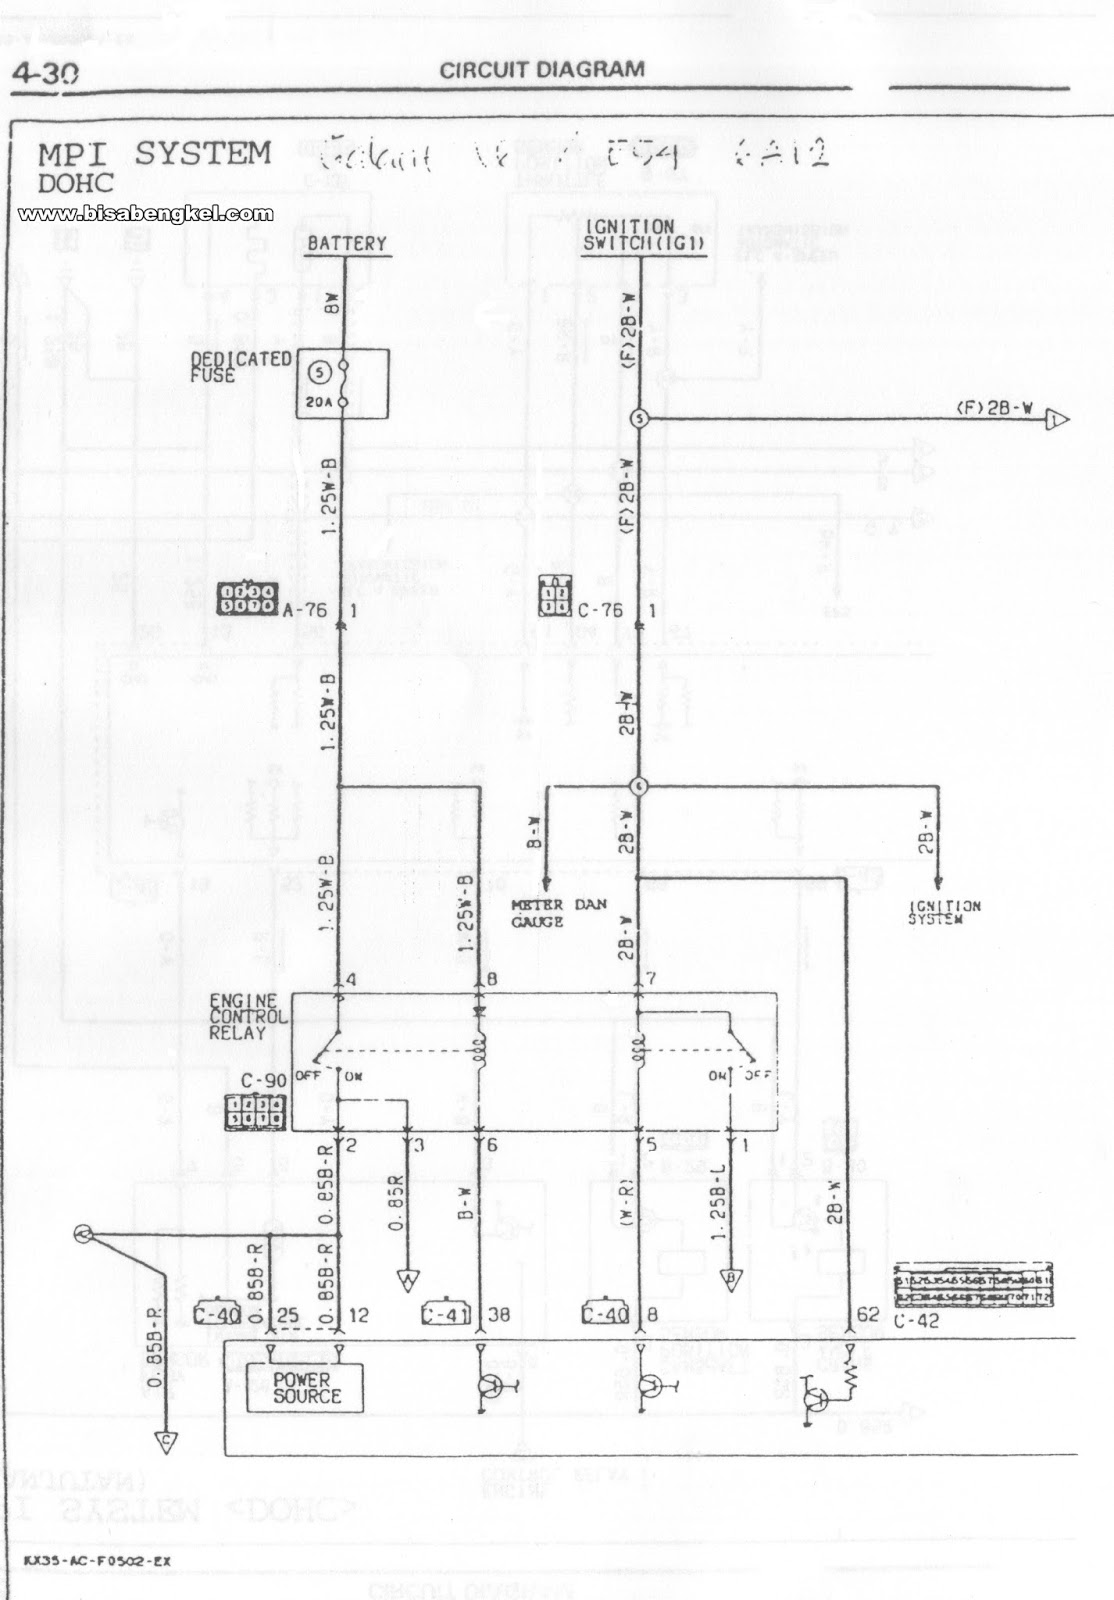 hight resolution of mitsubishi eterna v6 wiring diagram wiring diagram blogs rh 11 2 restaurant freinsheimer hof de mitsubishi eclipse wiring diagram 95 mitsubishi galant